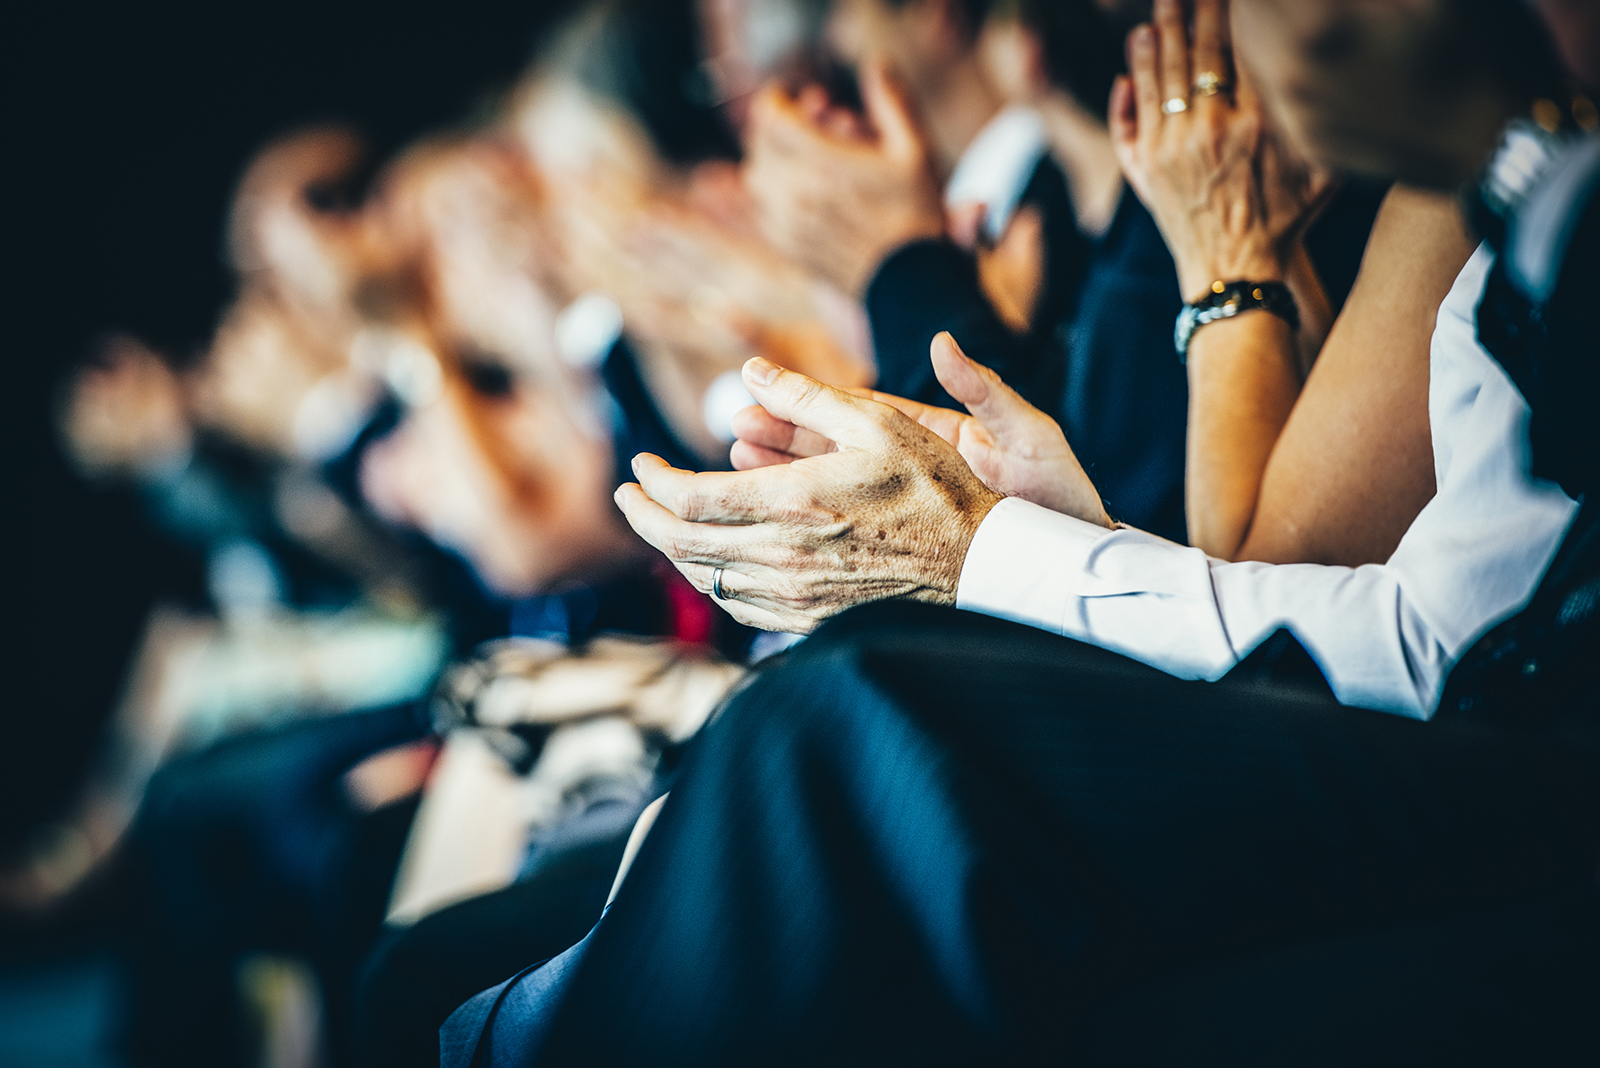 Audience clapping at a business conference